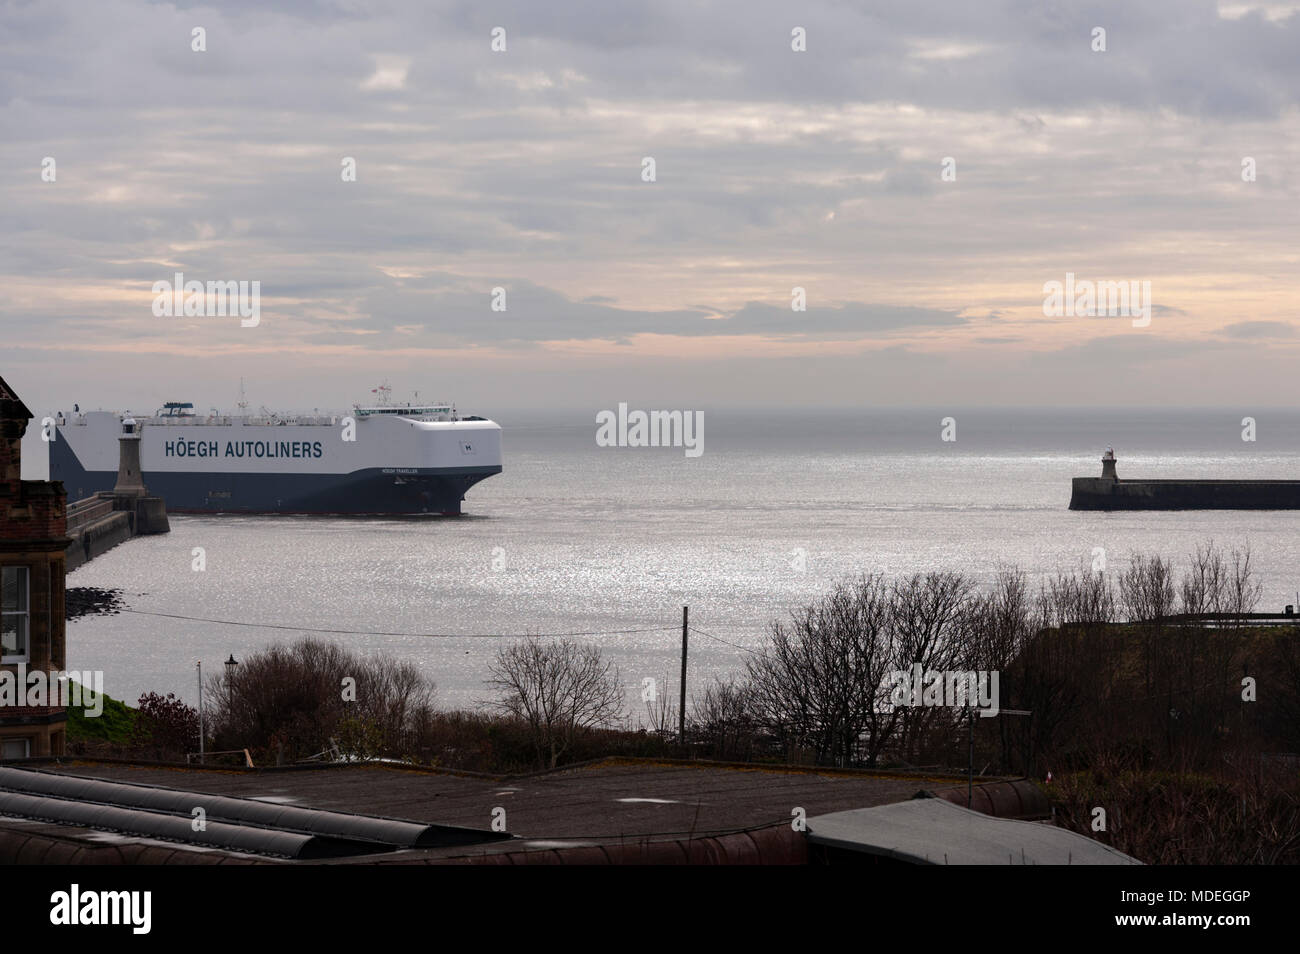 The Hoegh Traveller the autoliner arriving in the river Tyne on the early morning low tide, on the North East Coast. - Stock Image